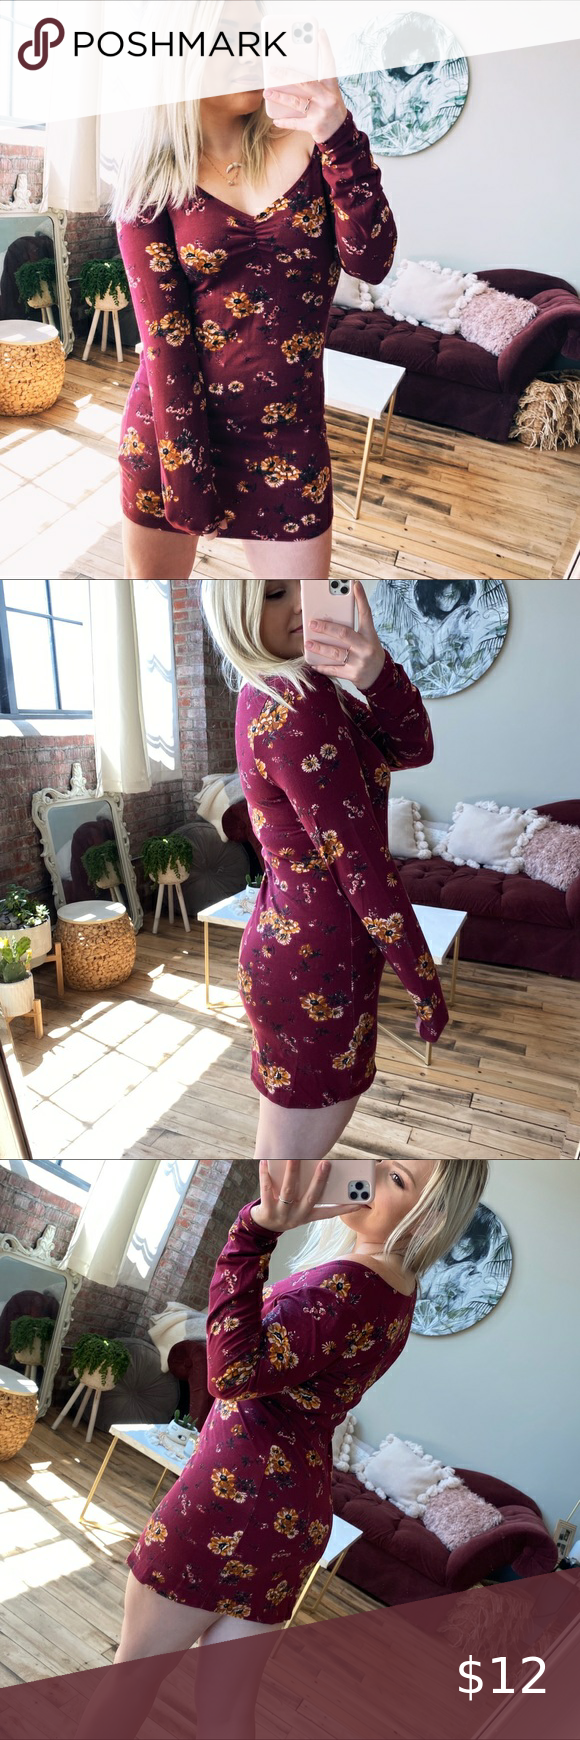 Wild Fable Target Floral Tight Body Con Dress Dresses Bodycon Dress Clothes Design [ 1740 x 580 Pixel ]